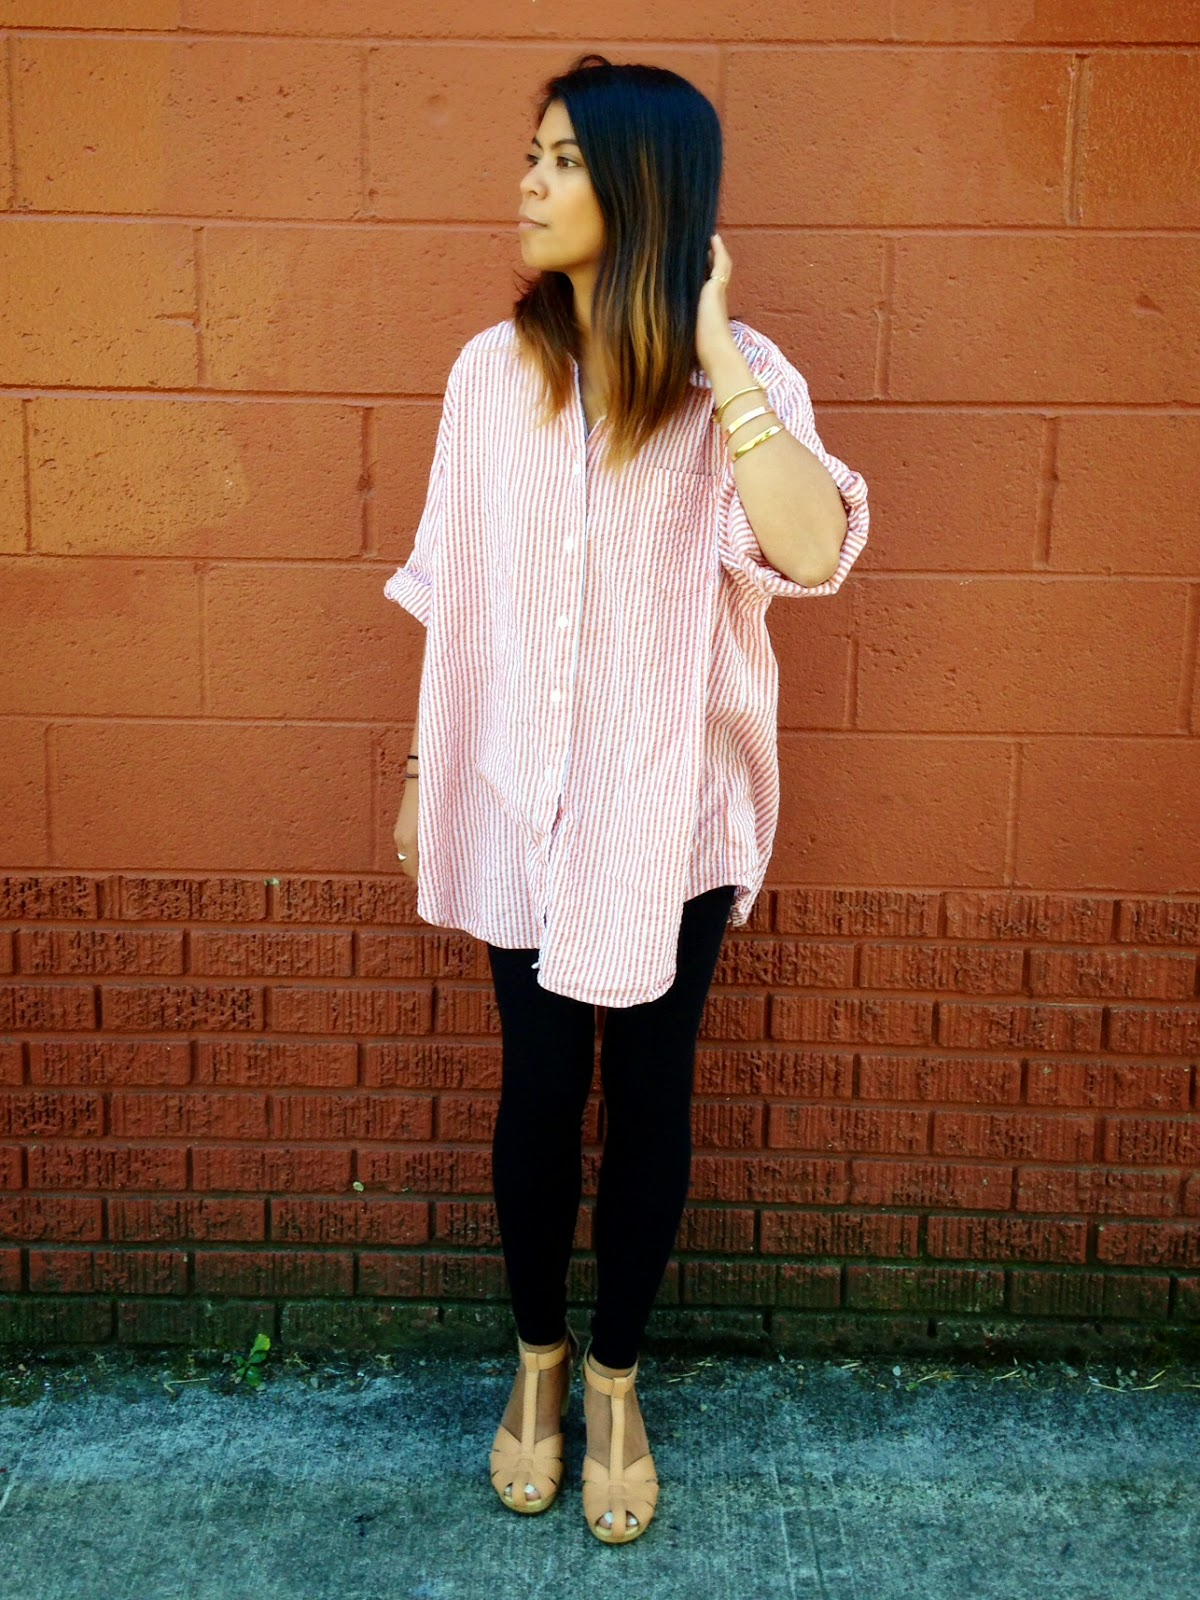 portland blogger, clogs, outfit of the day, street style, what i wore, fashion blogger